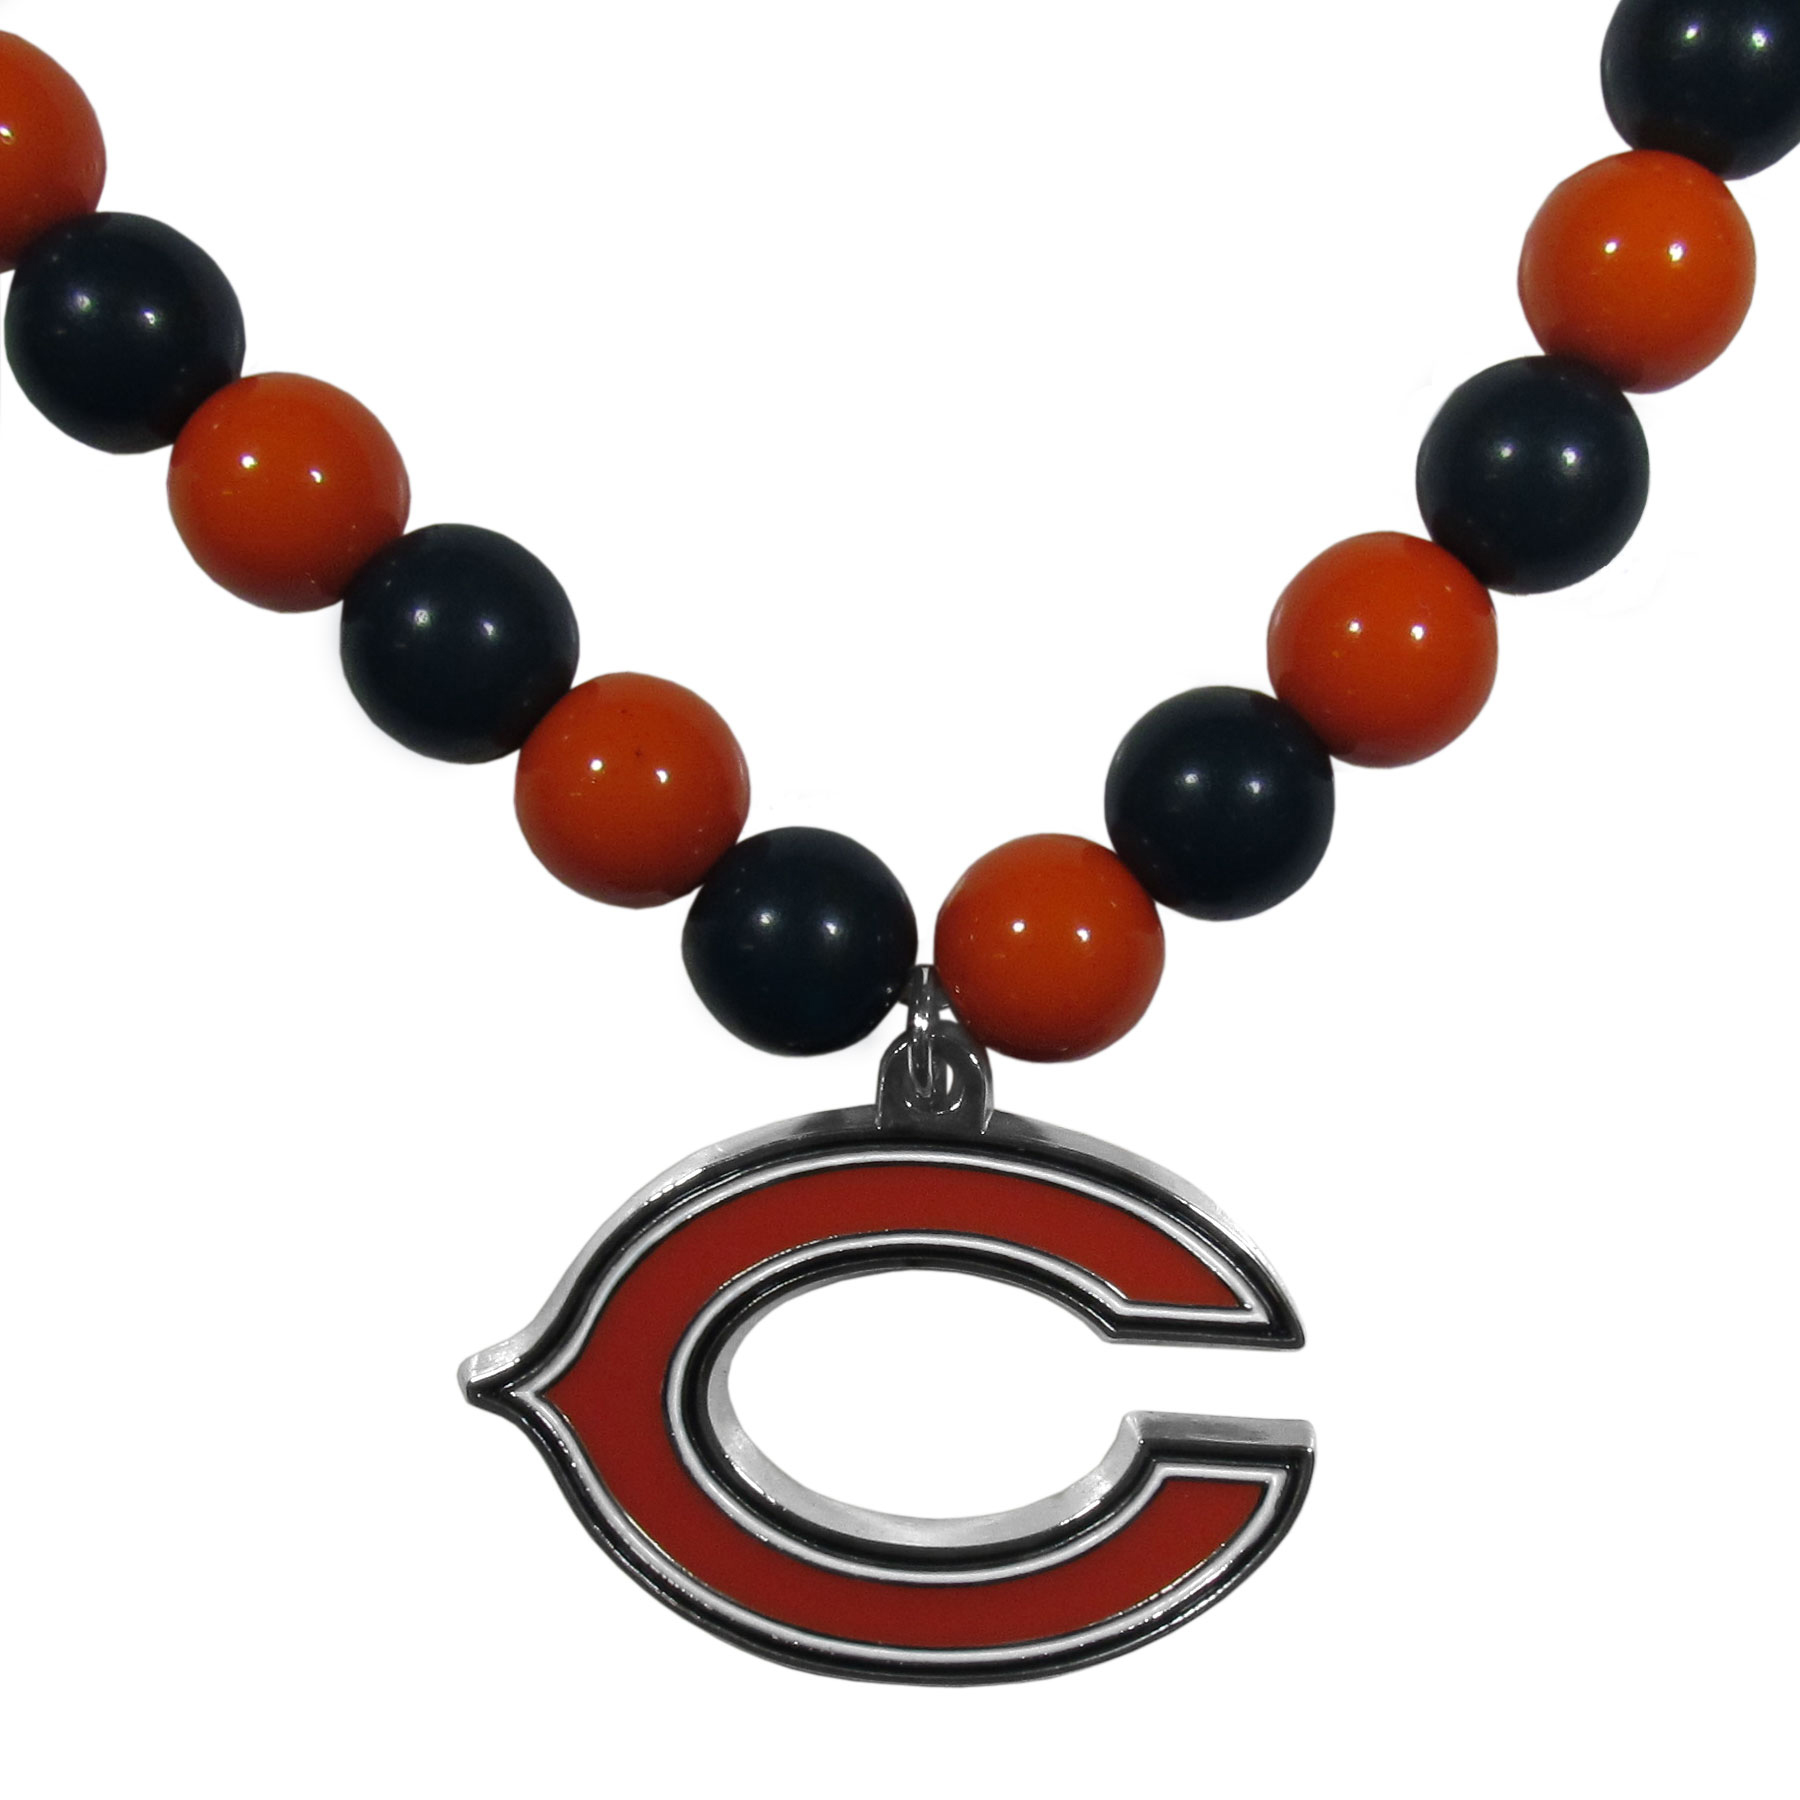 Chicago Bears Fan Bead Necklace - Make a big statement with our fan bead necklaces! These brightly colored necklace have a 24 inch string of alternating colored beads with an extra large, high-polish Chicago Bears pendant.